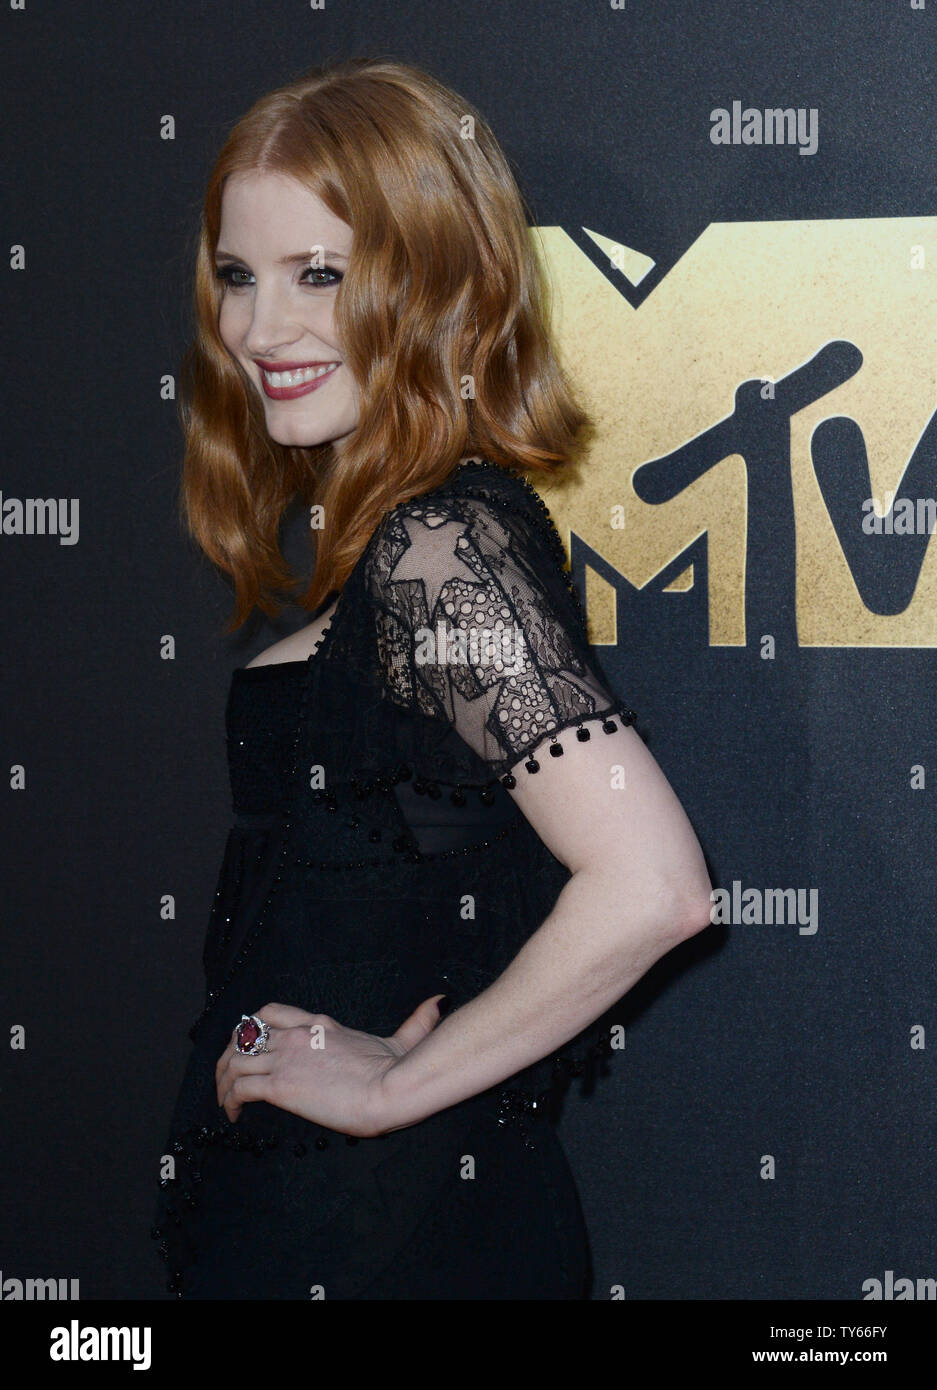 Actress Jessica Chastain attends the MTV Movie Awards at Warner Bros. Studios in Burbank, California on April 9, 2016. The MTV Movie Awards airs Sunday, April 10 at 8pm ET/PT.  Photo by Jim Ruymen/UPI - Stock Image